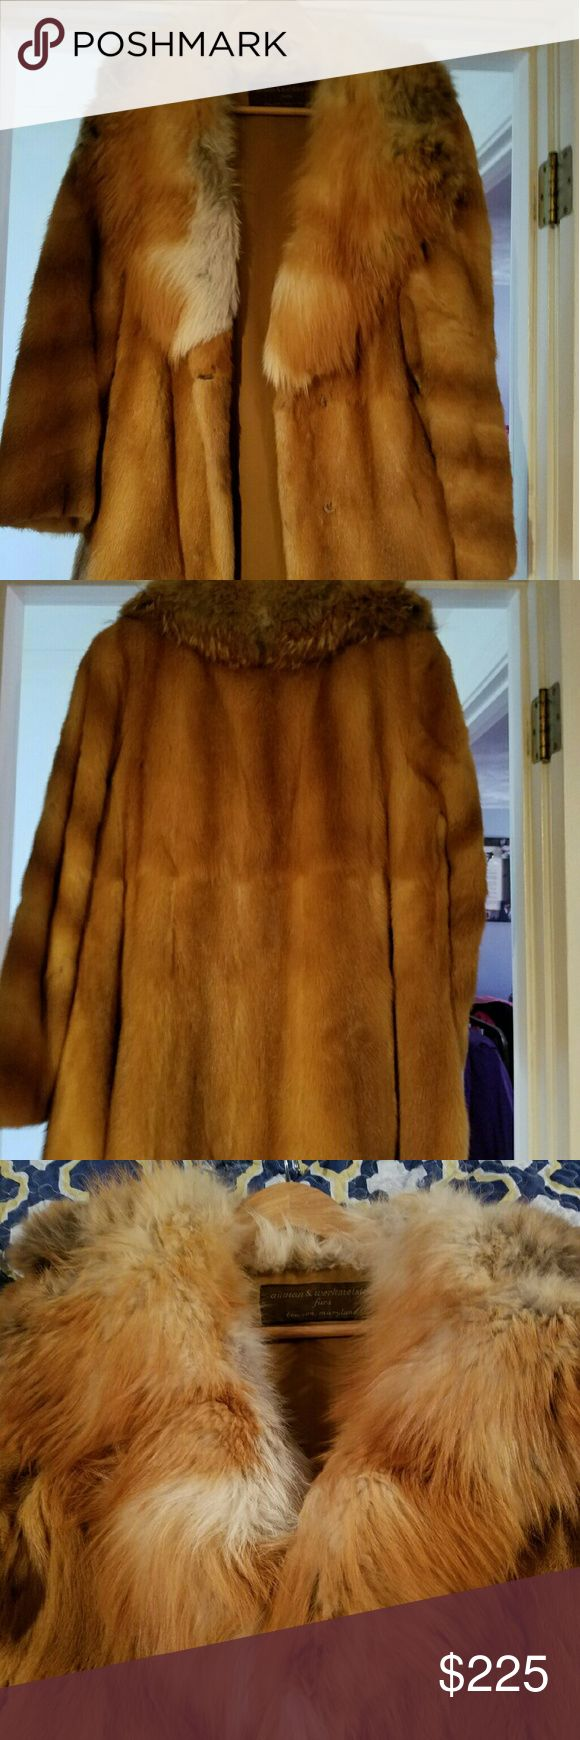 Authentic Mink Coat with Fox Collar Beautiful vintage Mink coat with full fox collar Size is Medium/Large. There is small tear right on seam, as shown in last picture can be fixed easily that's why I'm keeping price low. This was my grandmother's. Jackets & Coats